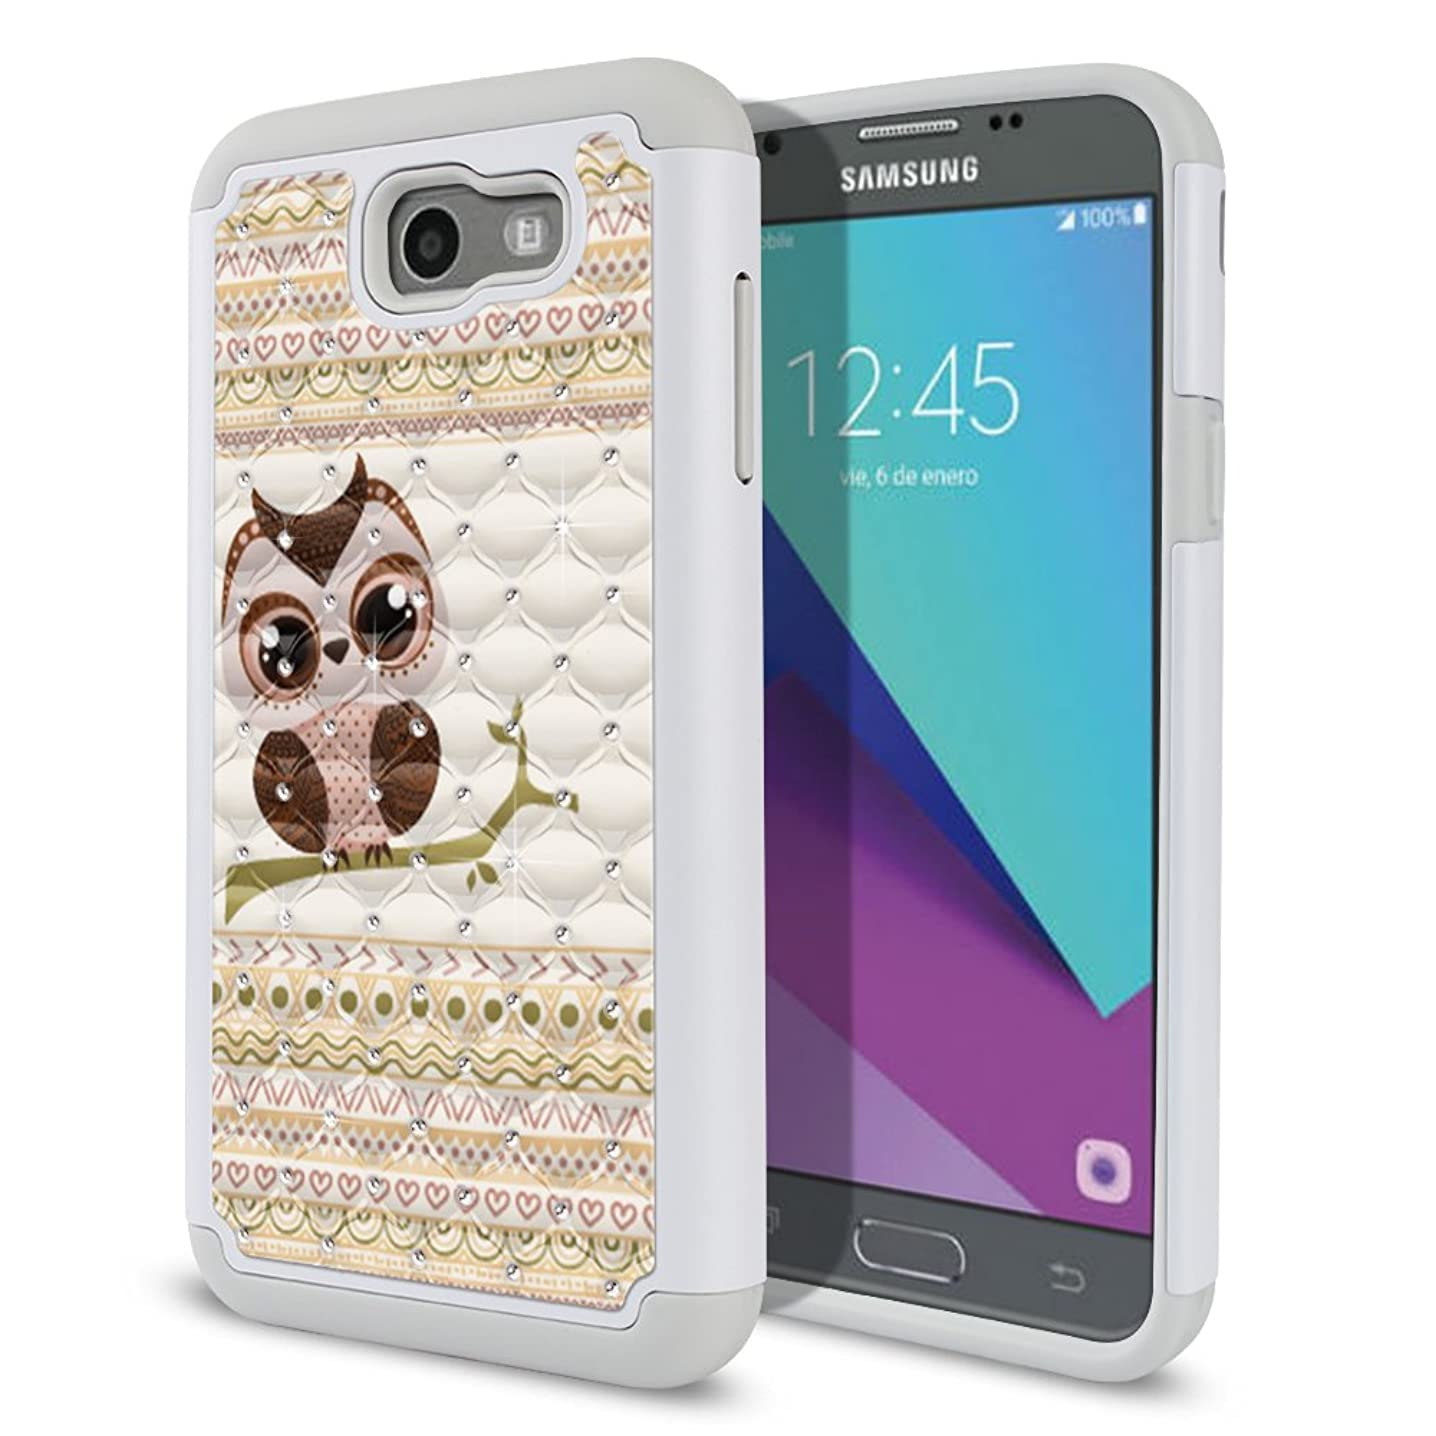 FINCIBO Case Compatible with Samsung Galaxy J7 2017 Sky Pro, Dual Layer Shock Proof Hybrid Protector Case Cover TPU Rhinestone Bling for Galaxy J7 2017 Sky Pro (NOT FIT J7 2016) - Aztec Baby Owl